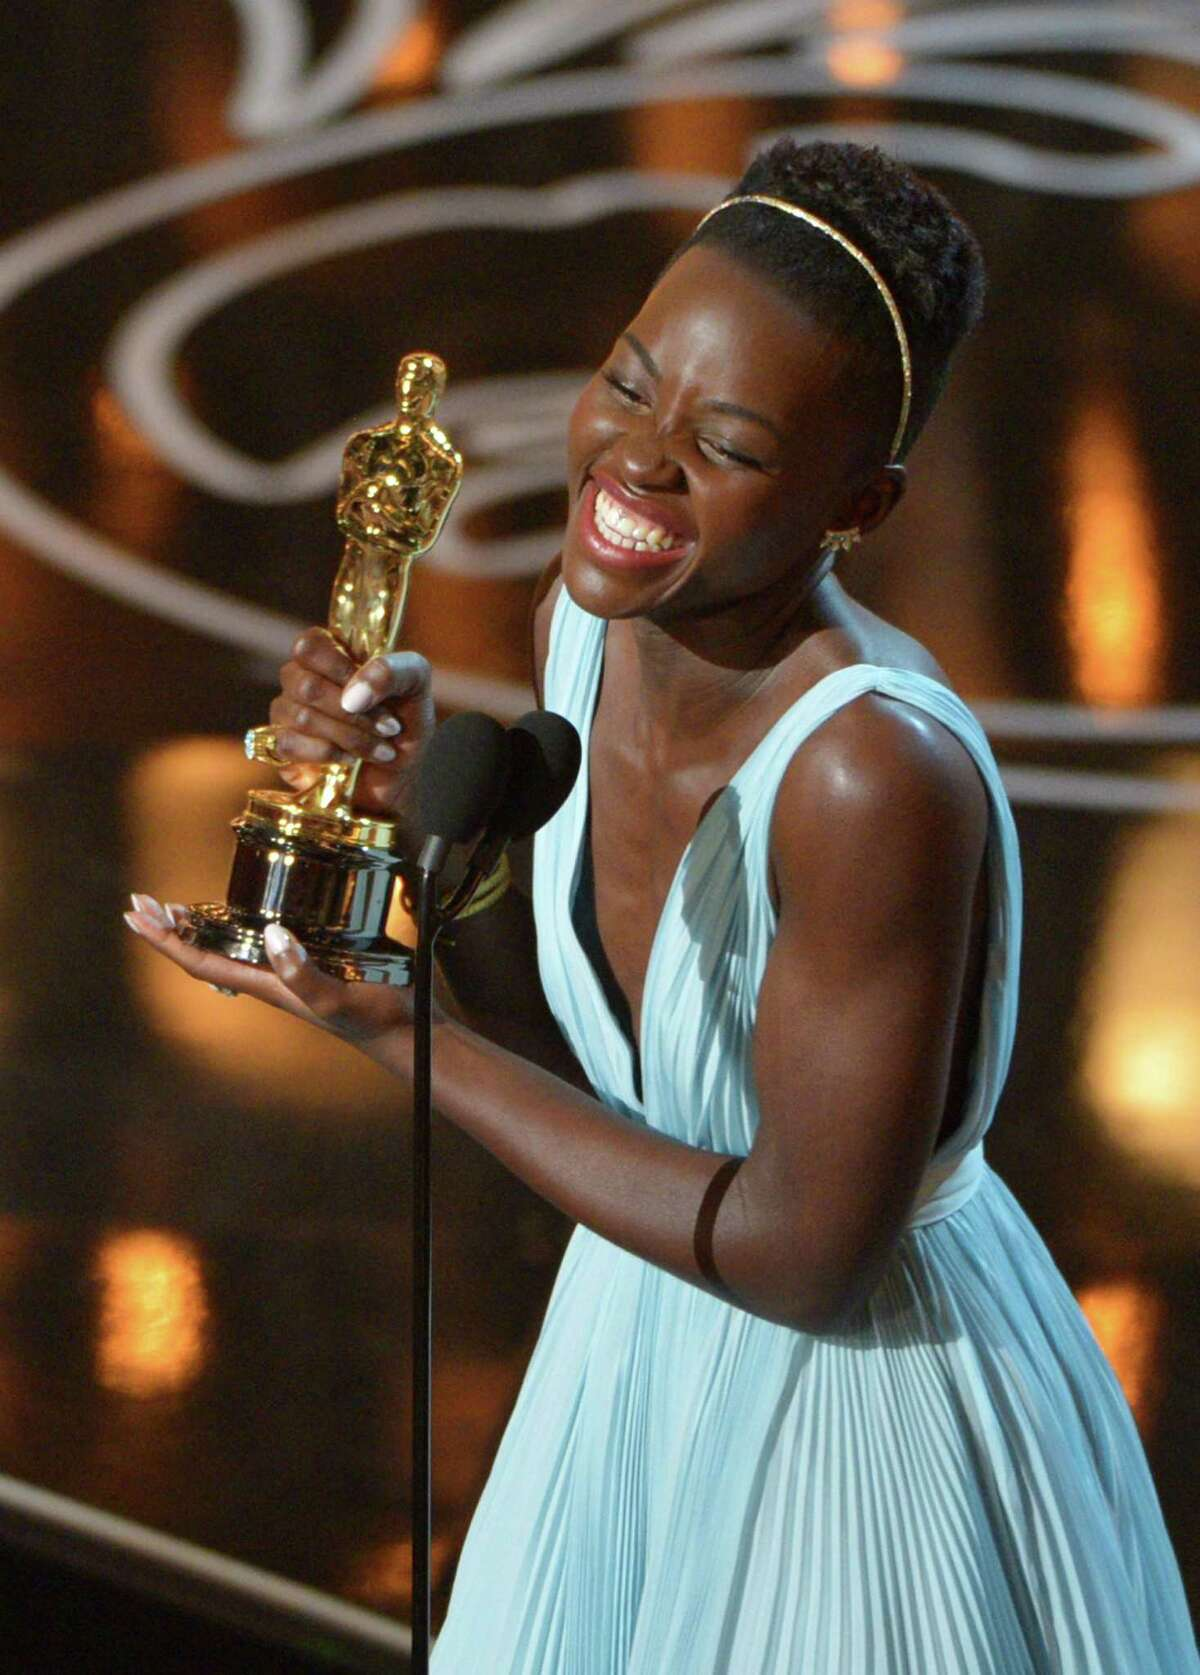 FILE - In this March 2, 2014 file photo, Lupita Nyongío accepts the award for best actress in a supporting role for